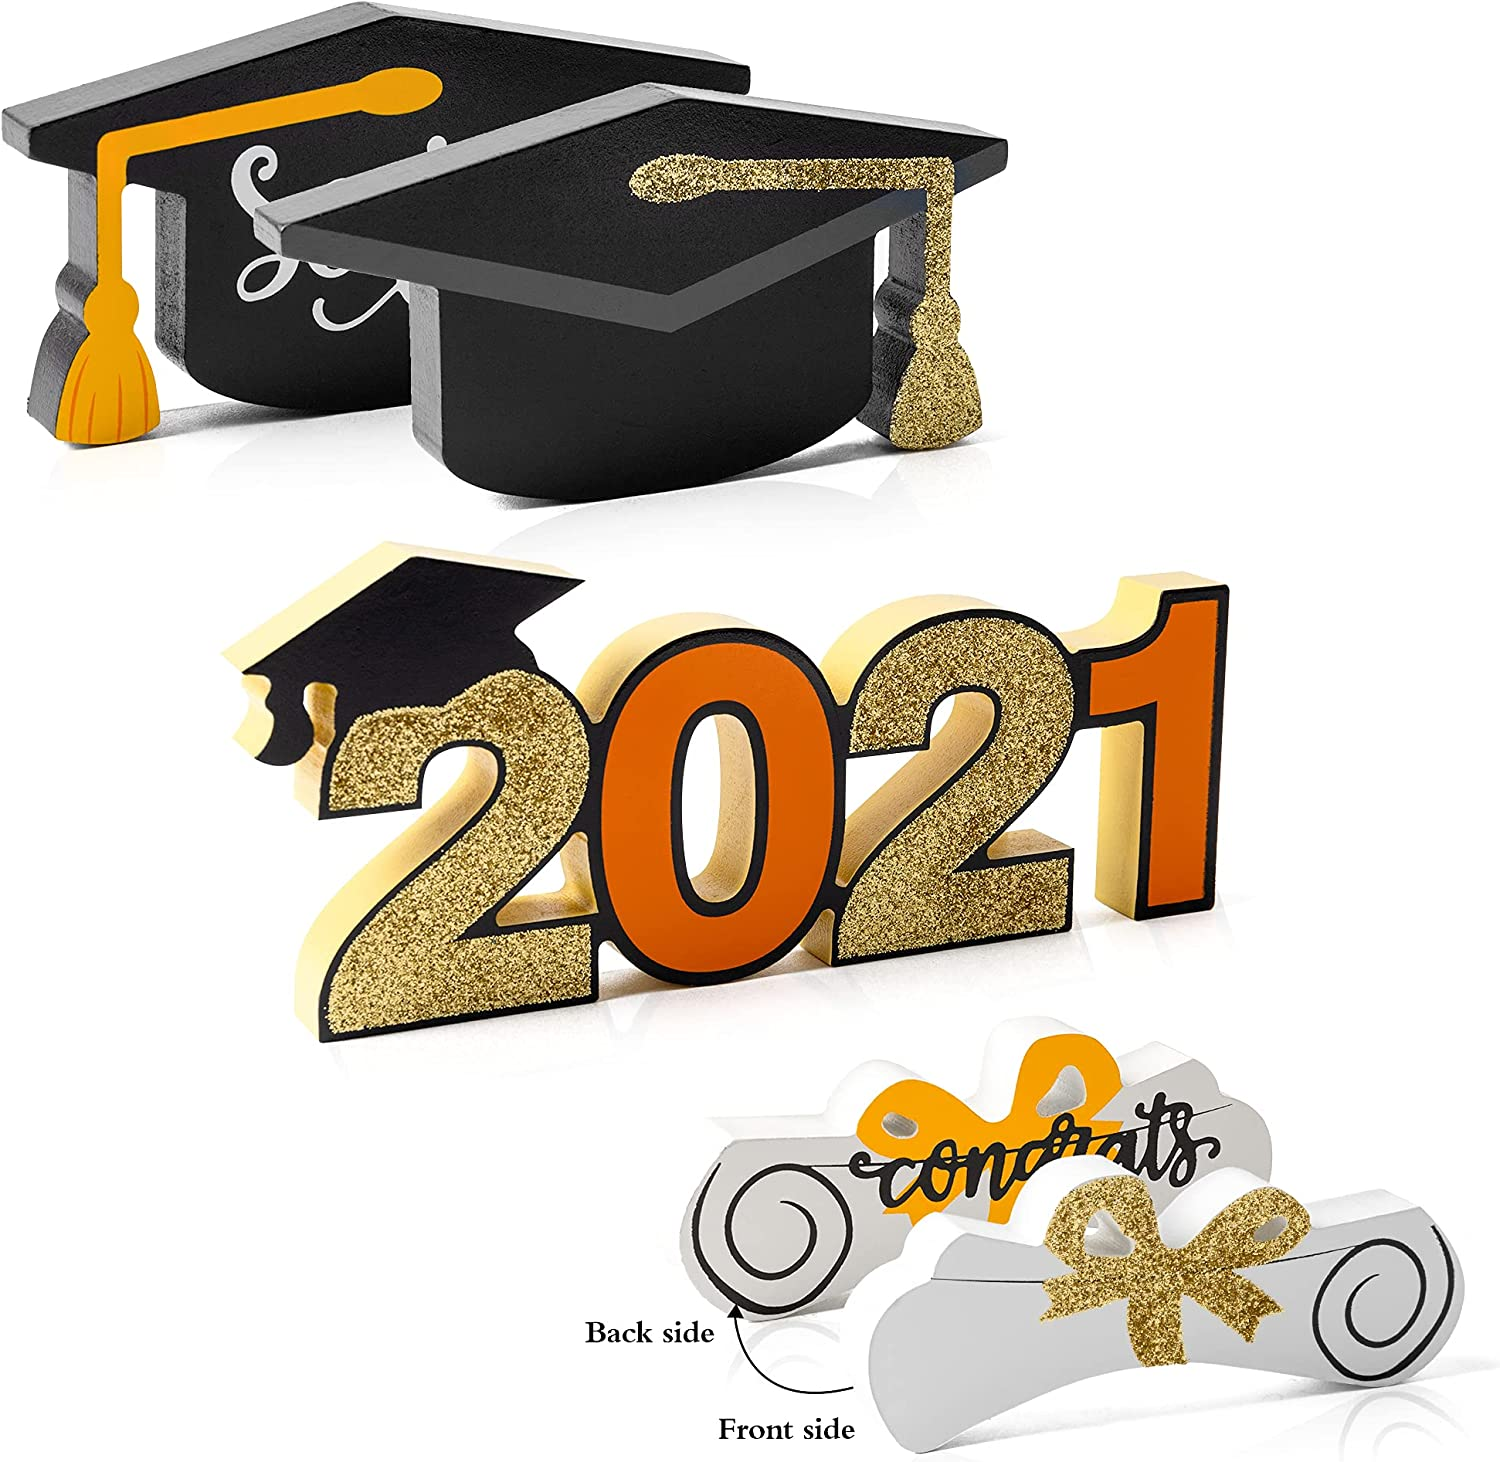 WATINC 3pcs Graduation Double-Sided Print Wooden Table Decoration, Freestanding Class of 2021 Centerpiece Sign for Congratulation Party, Black Gold Glitter Tiered Tray Decoration for Grad Party Favors